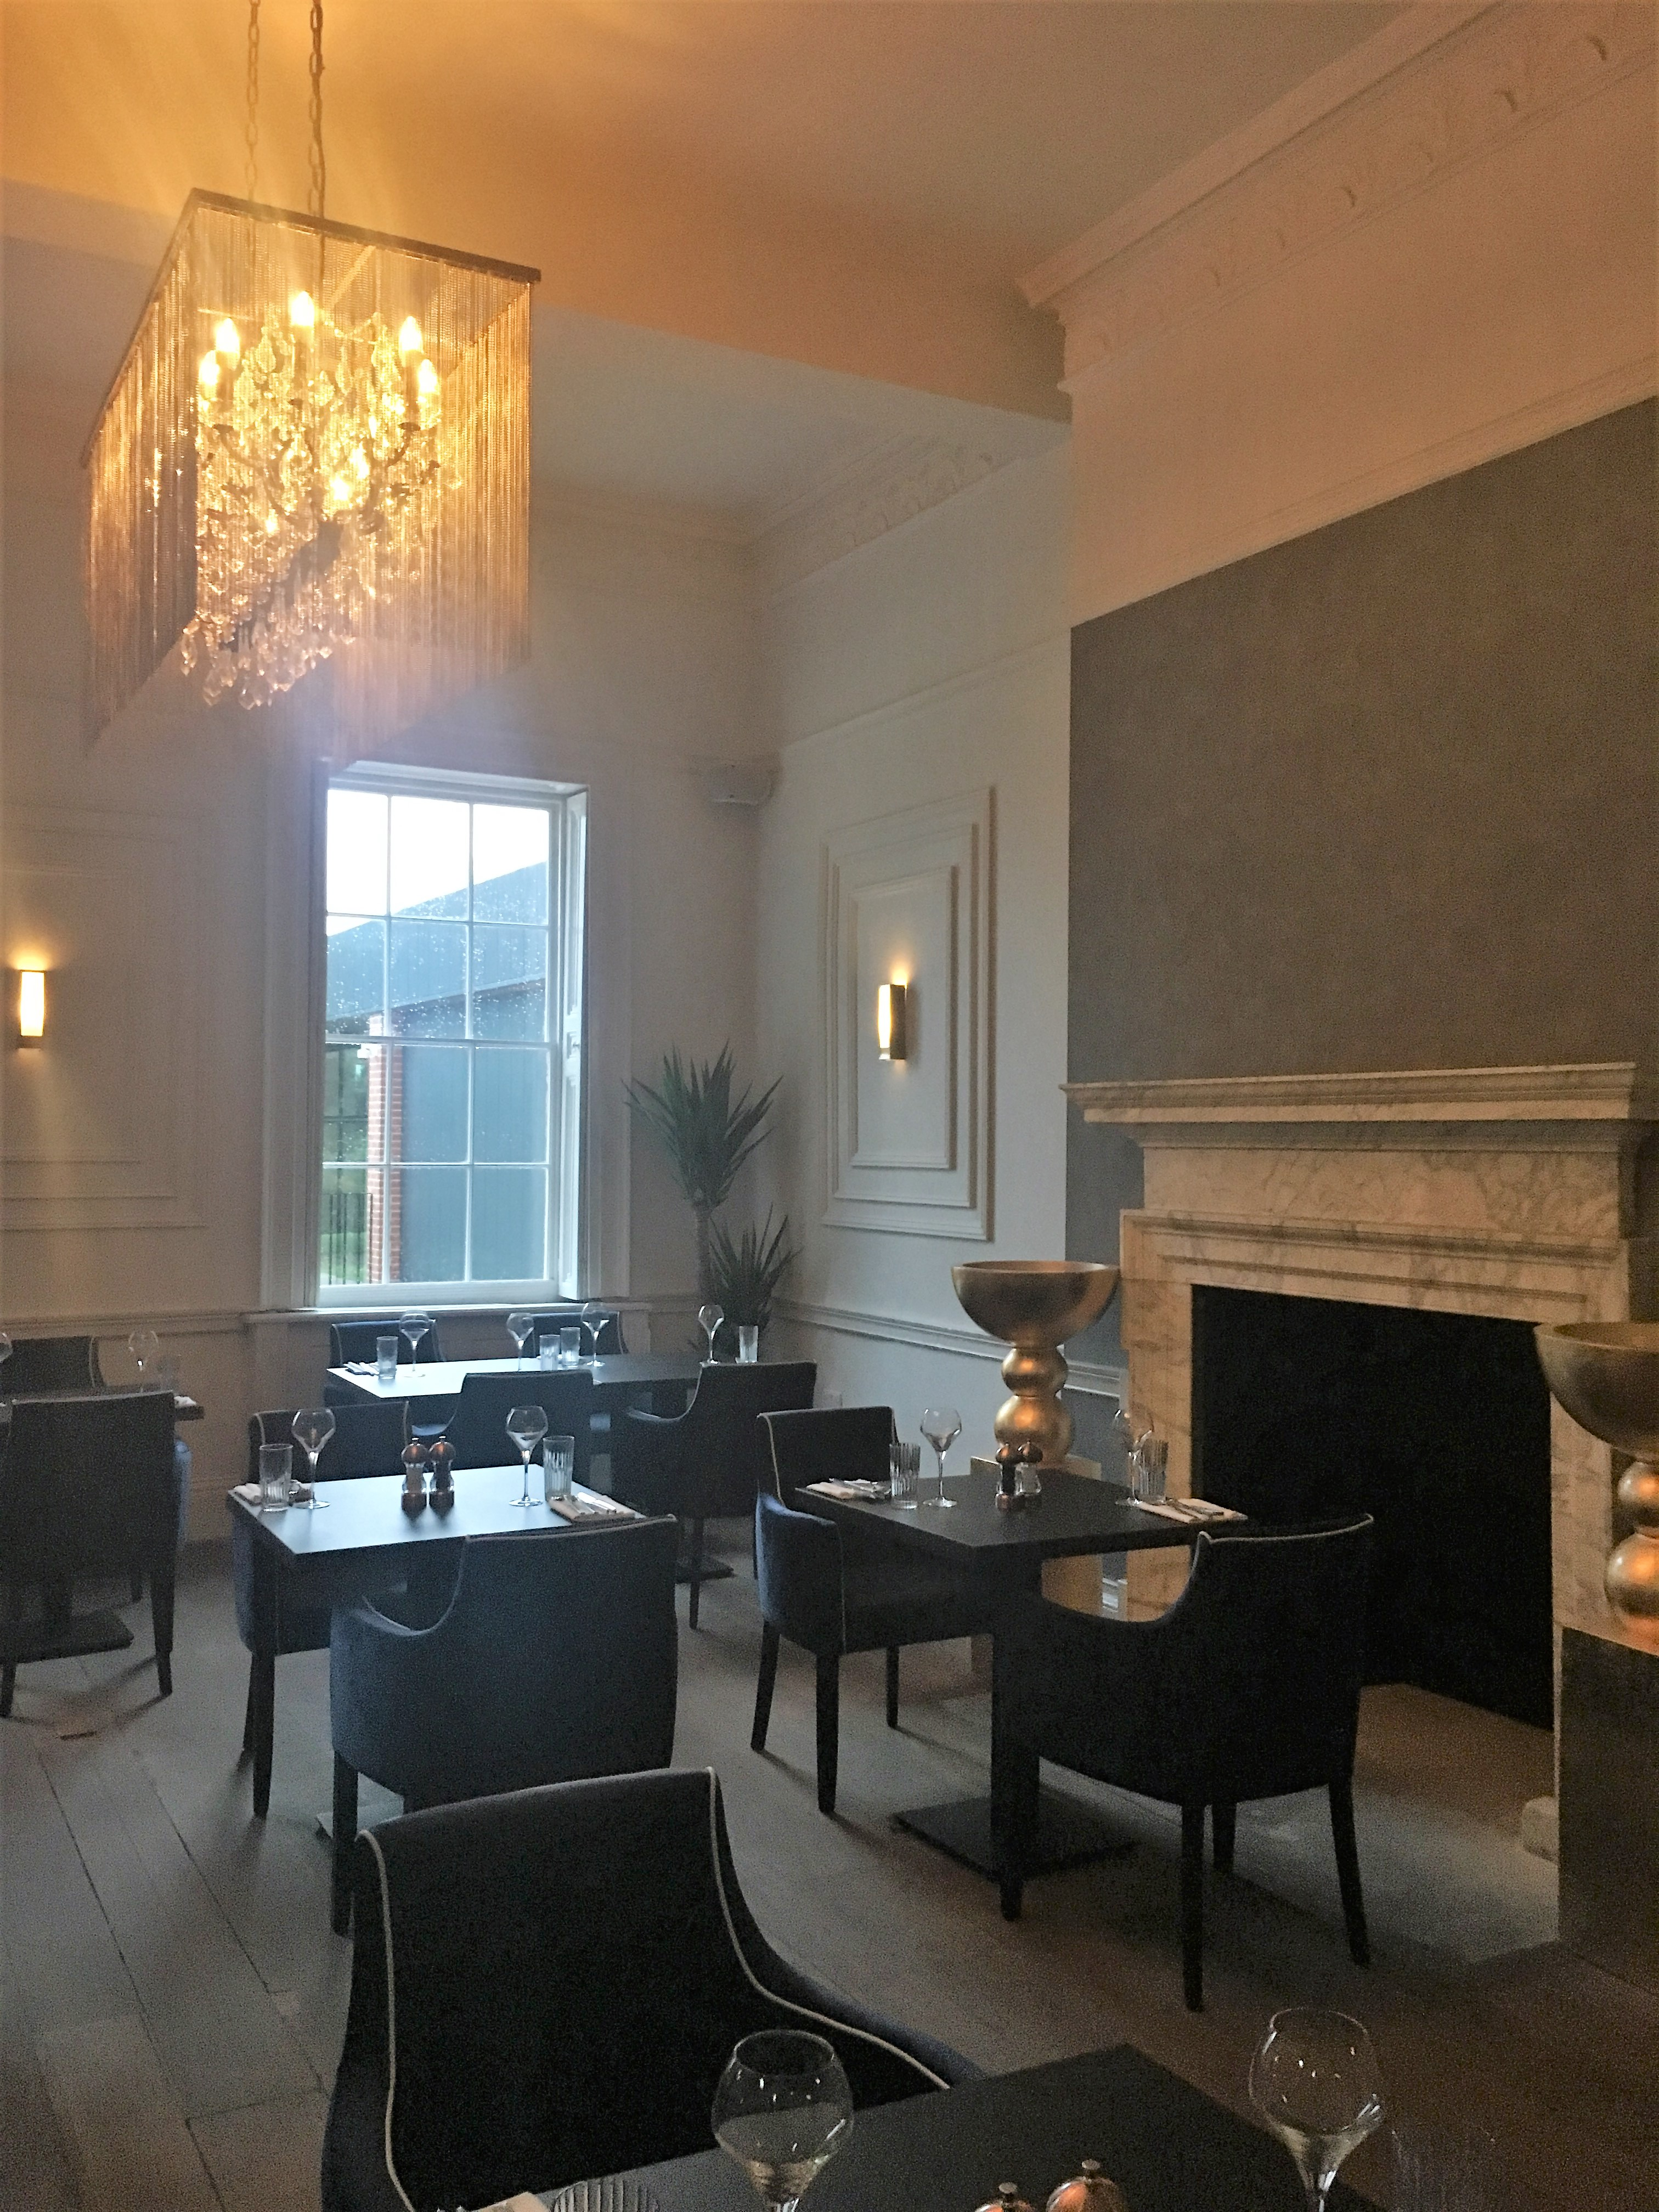 Fine fare at The Black Iron Resturant, Winstanley House The Restaurant Room